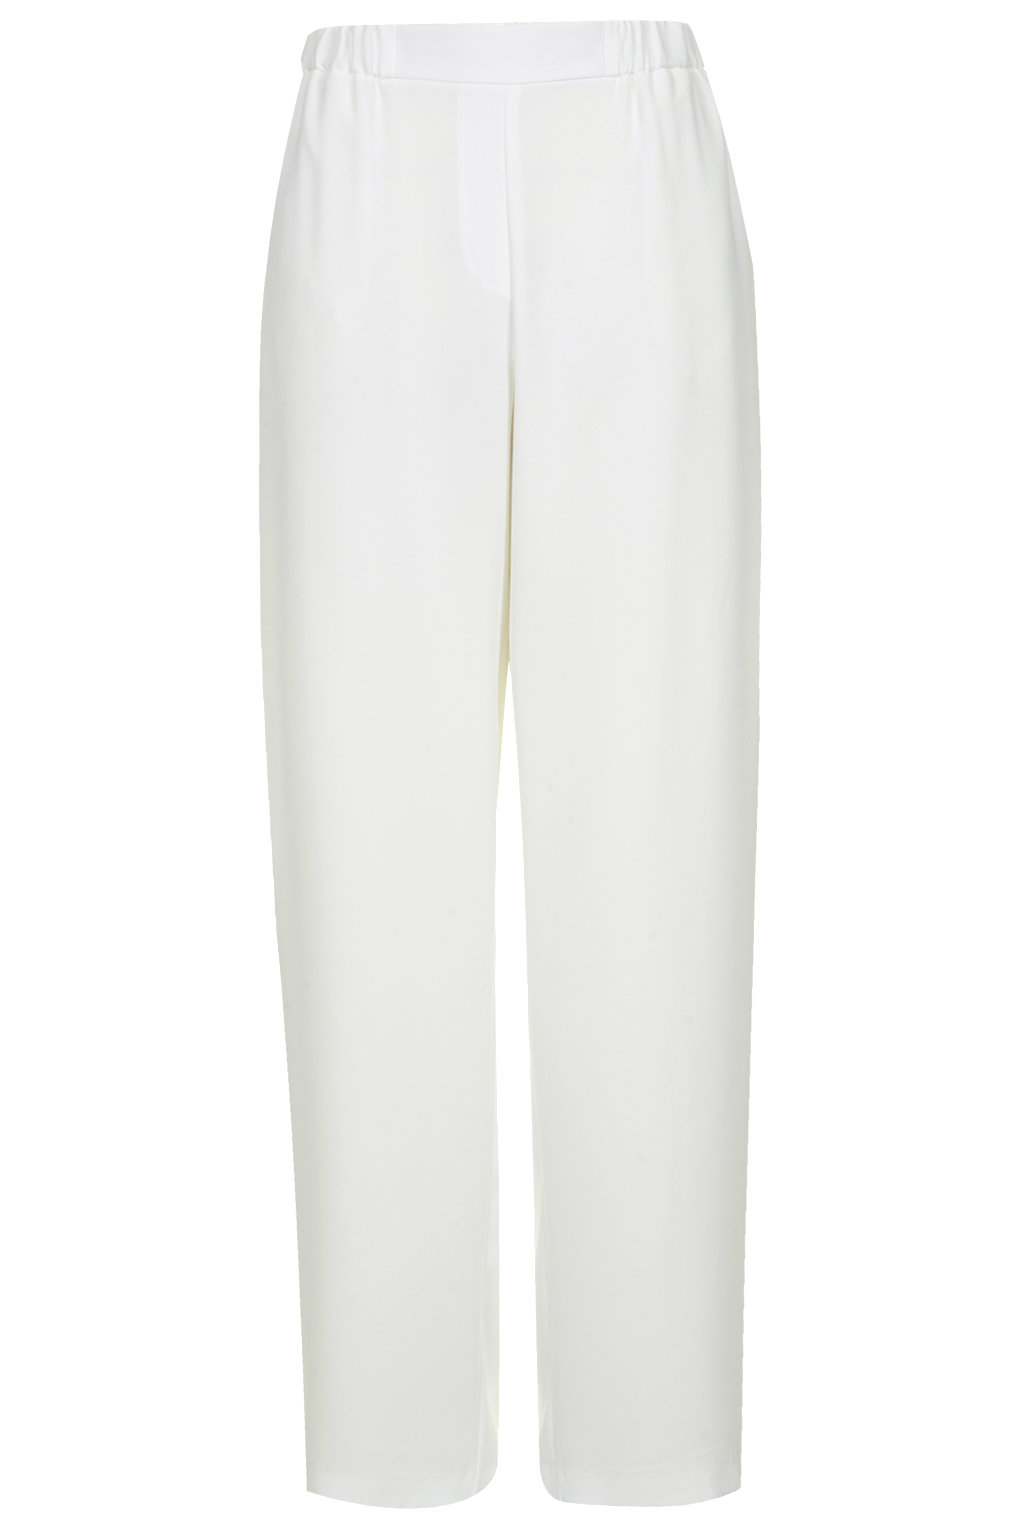 Paperbag wide leg trousers